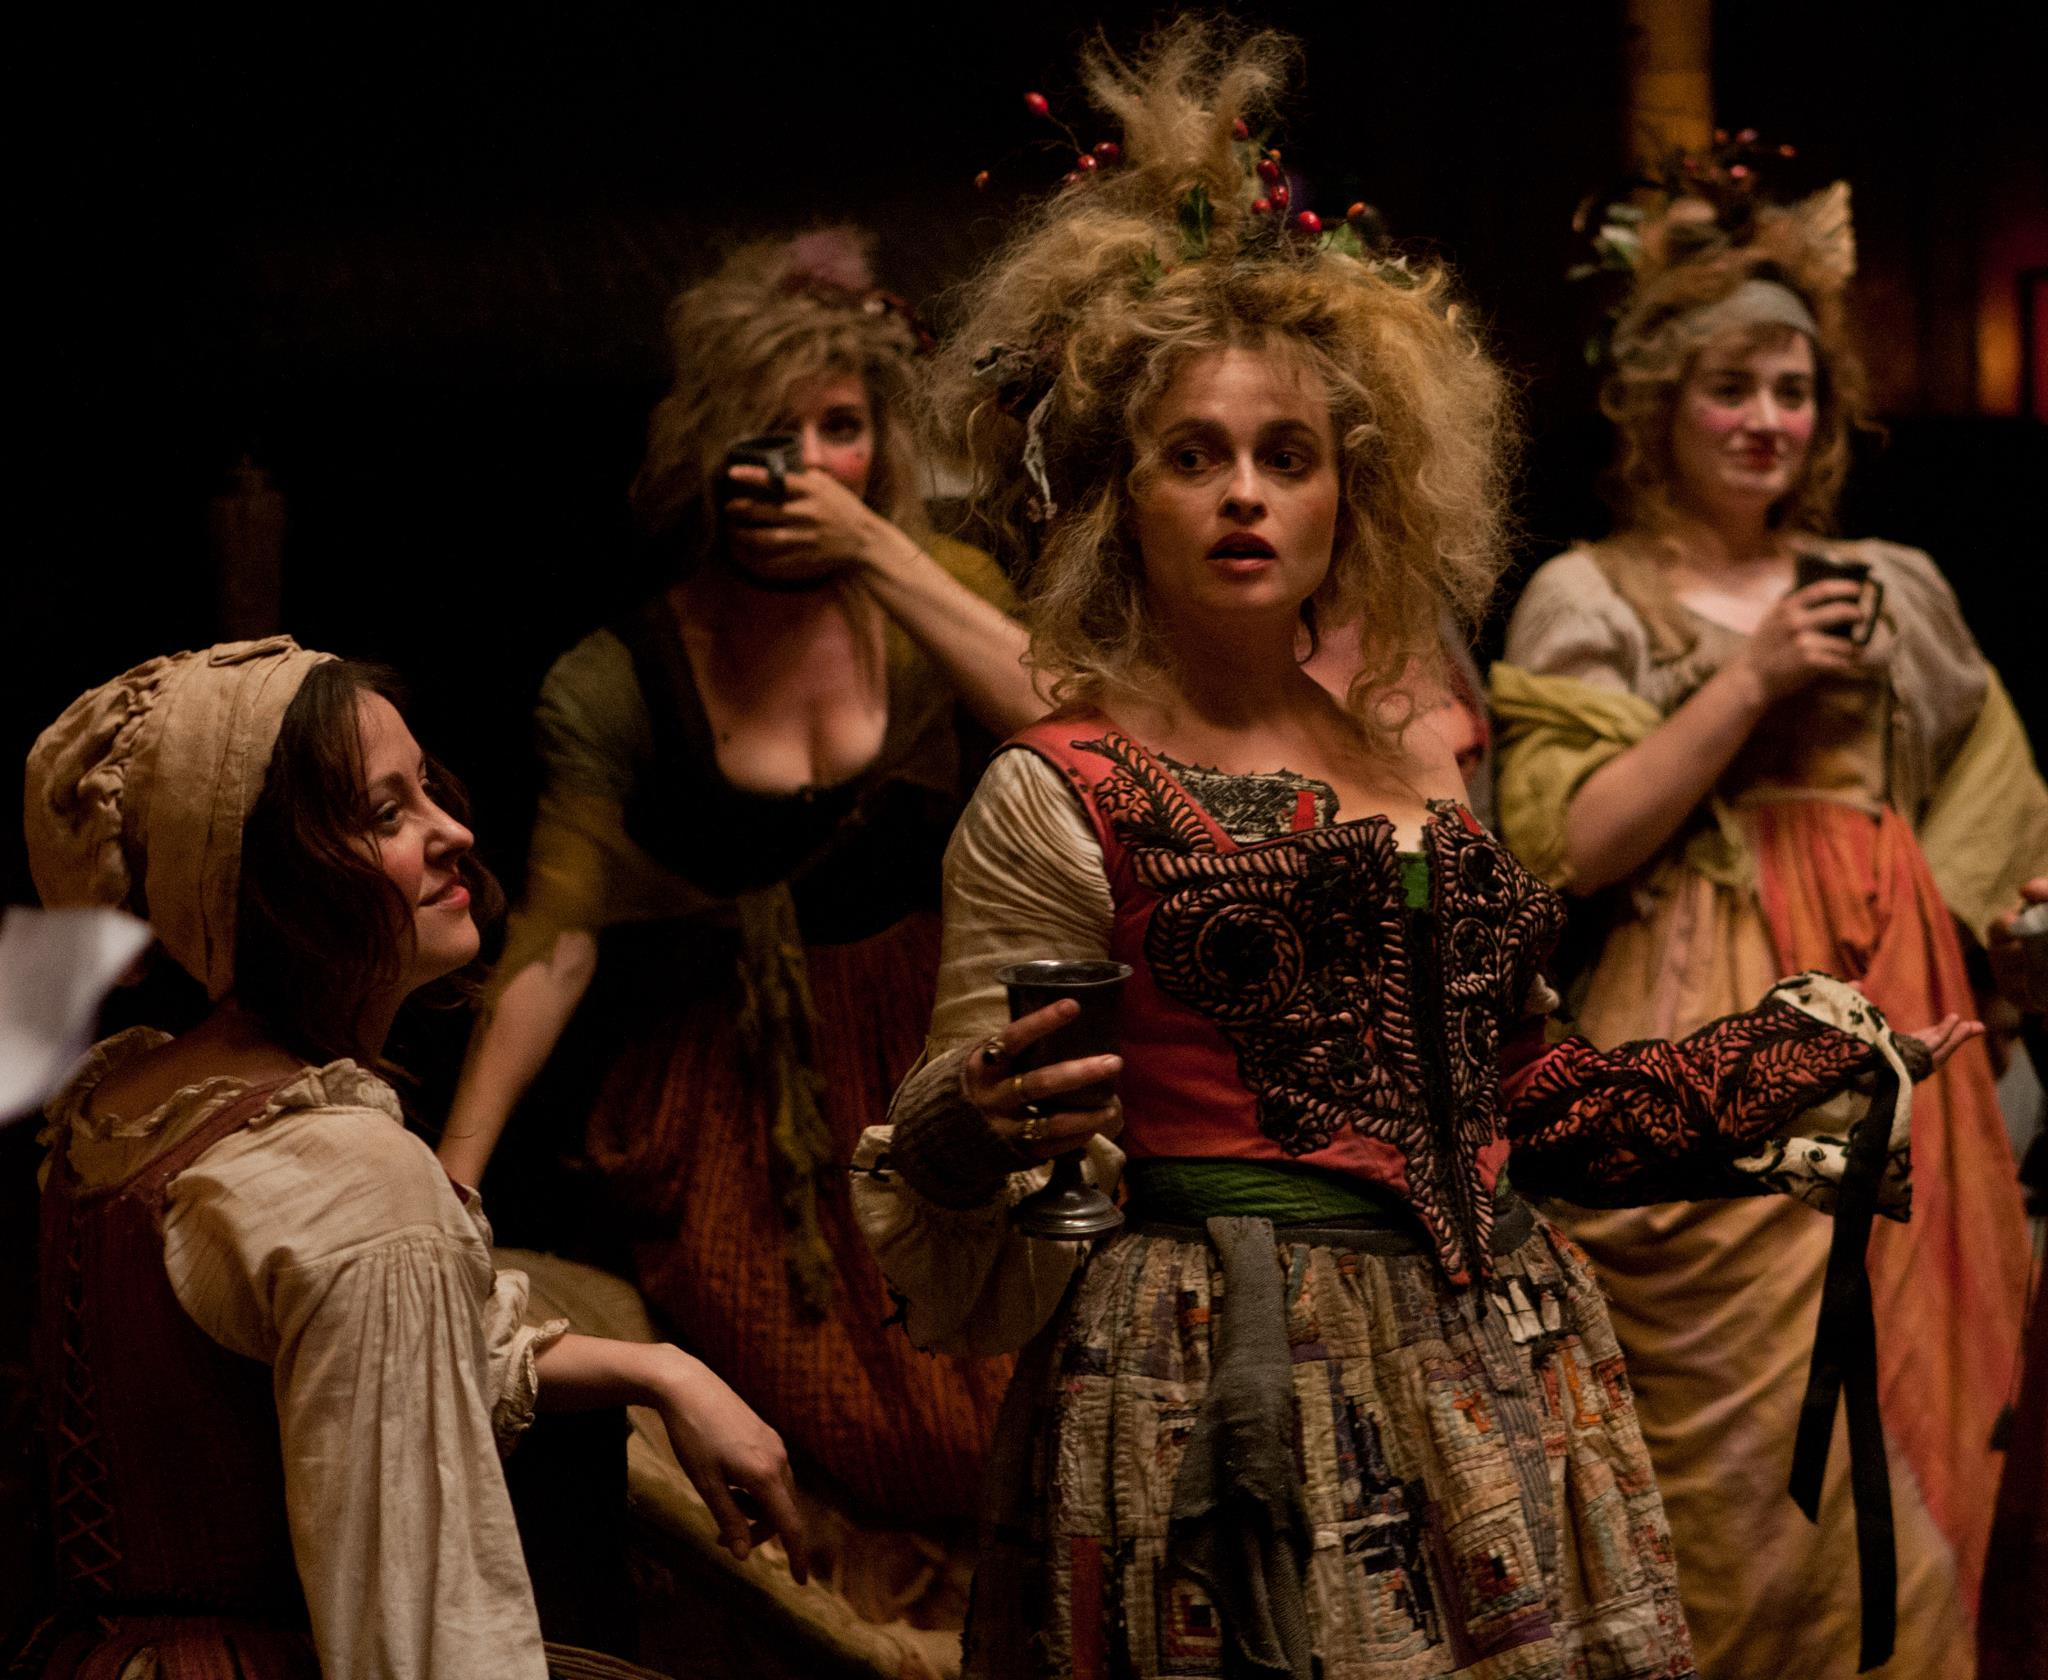 Les Miserables 2012 (10)